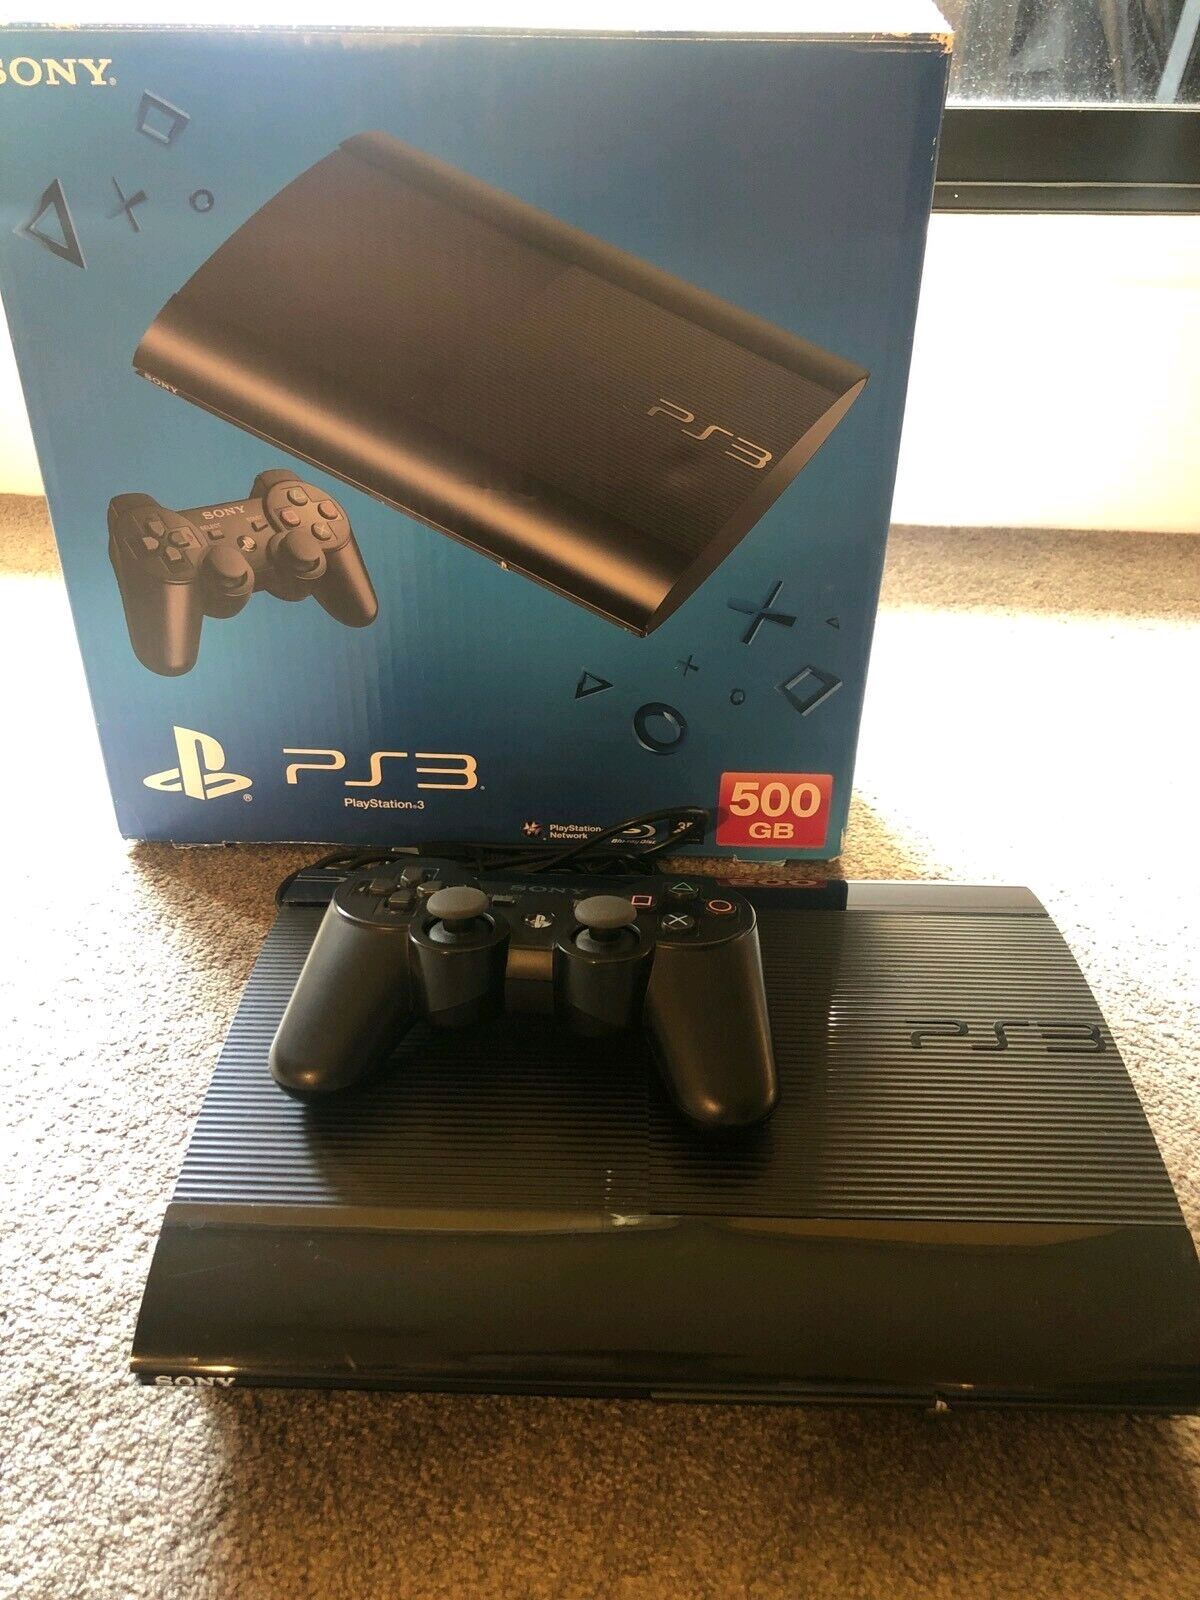 Sony Ps3 500gb super slim R2499 complete console with 1 free game